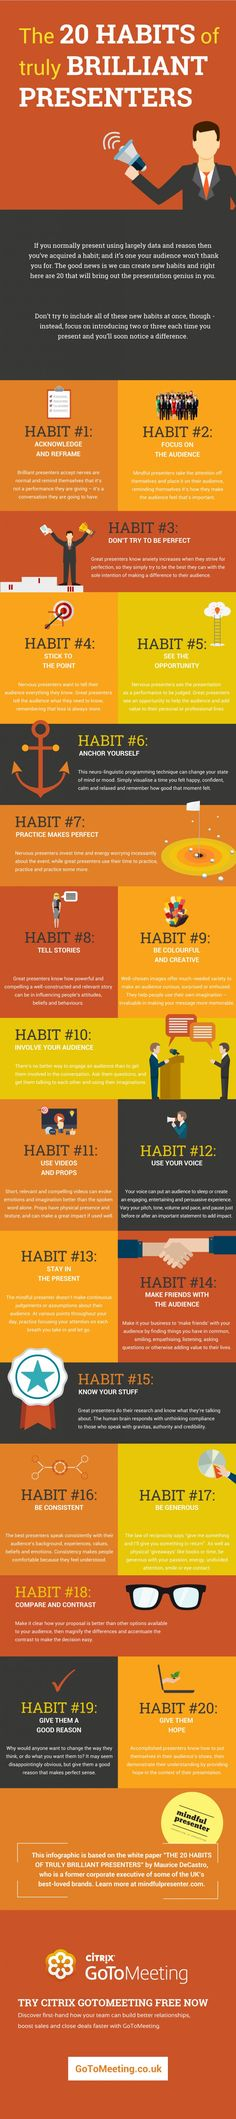 The infographic presents 20 habits of truly brilliant presenters and tips for nurturing these habits in your own presentations.